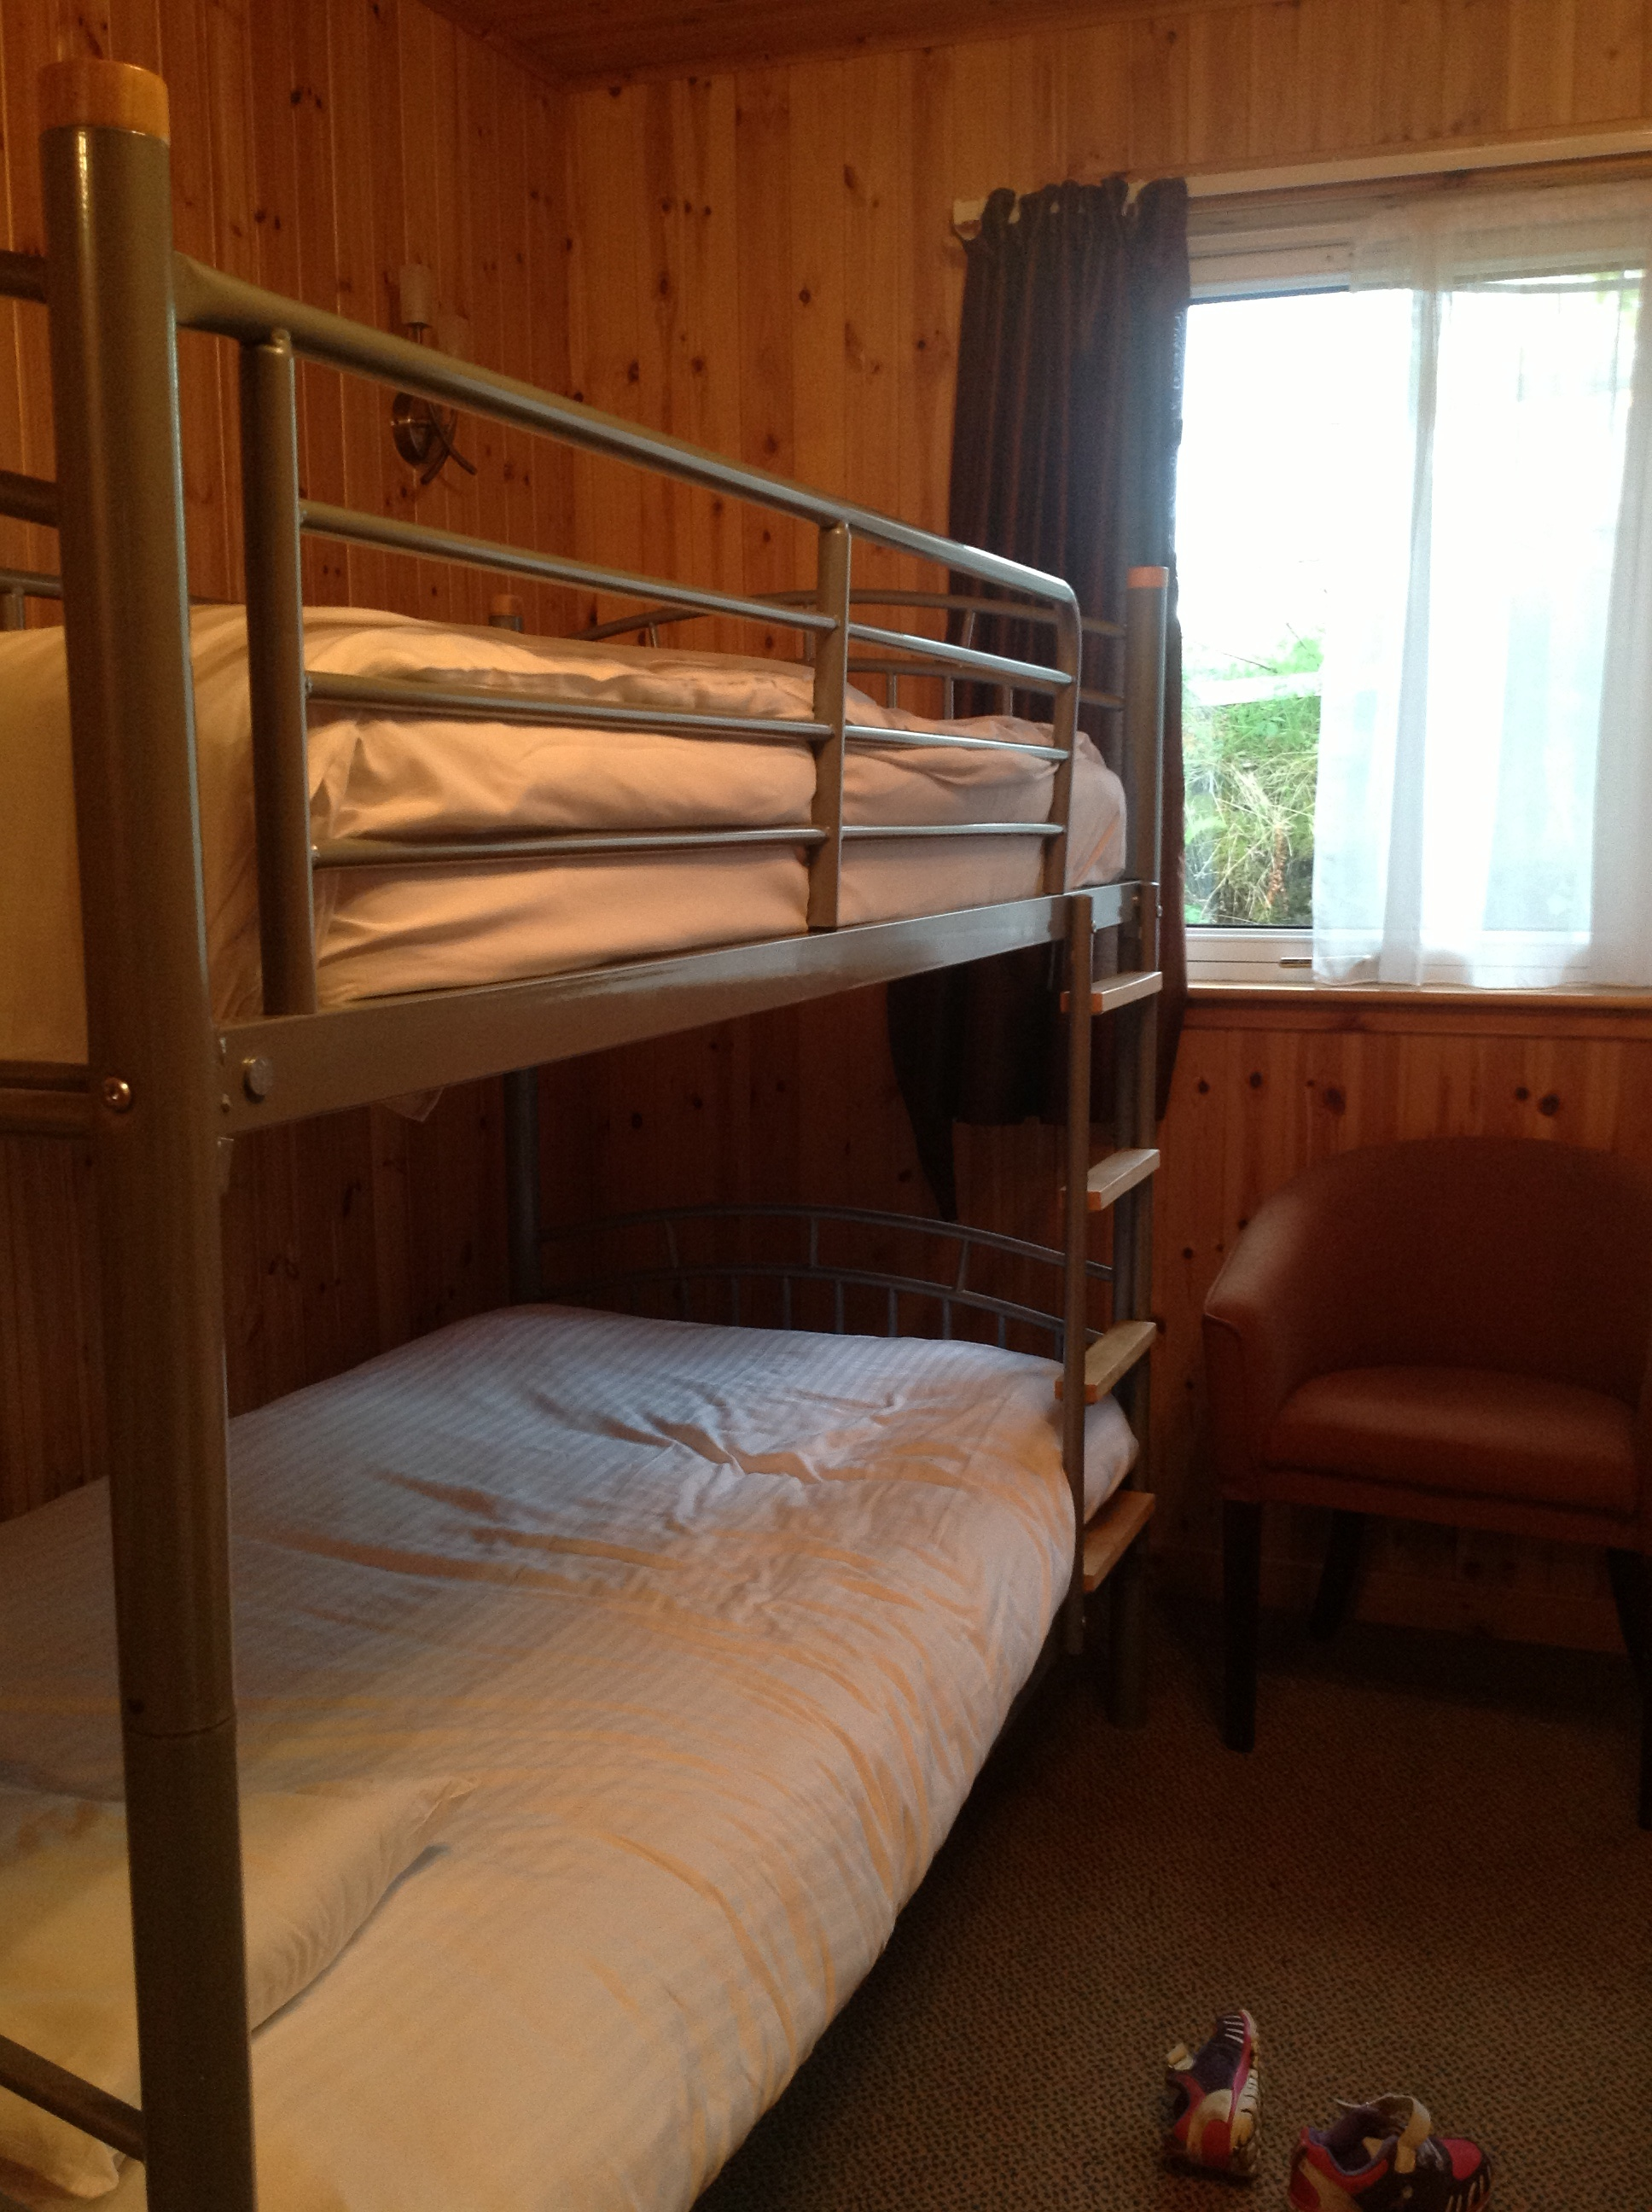 Rooms @Drumnadrochit Hotel, Loch Ness, Scotland Highlands